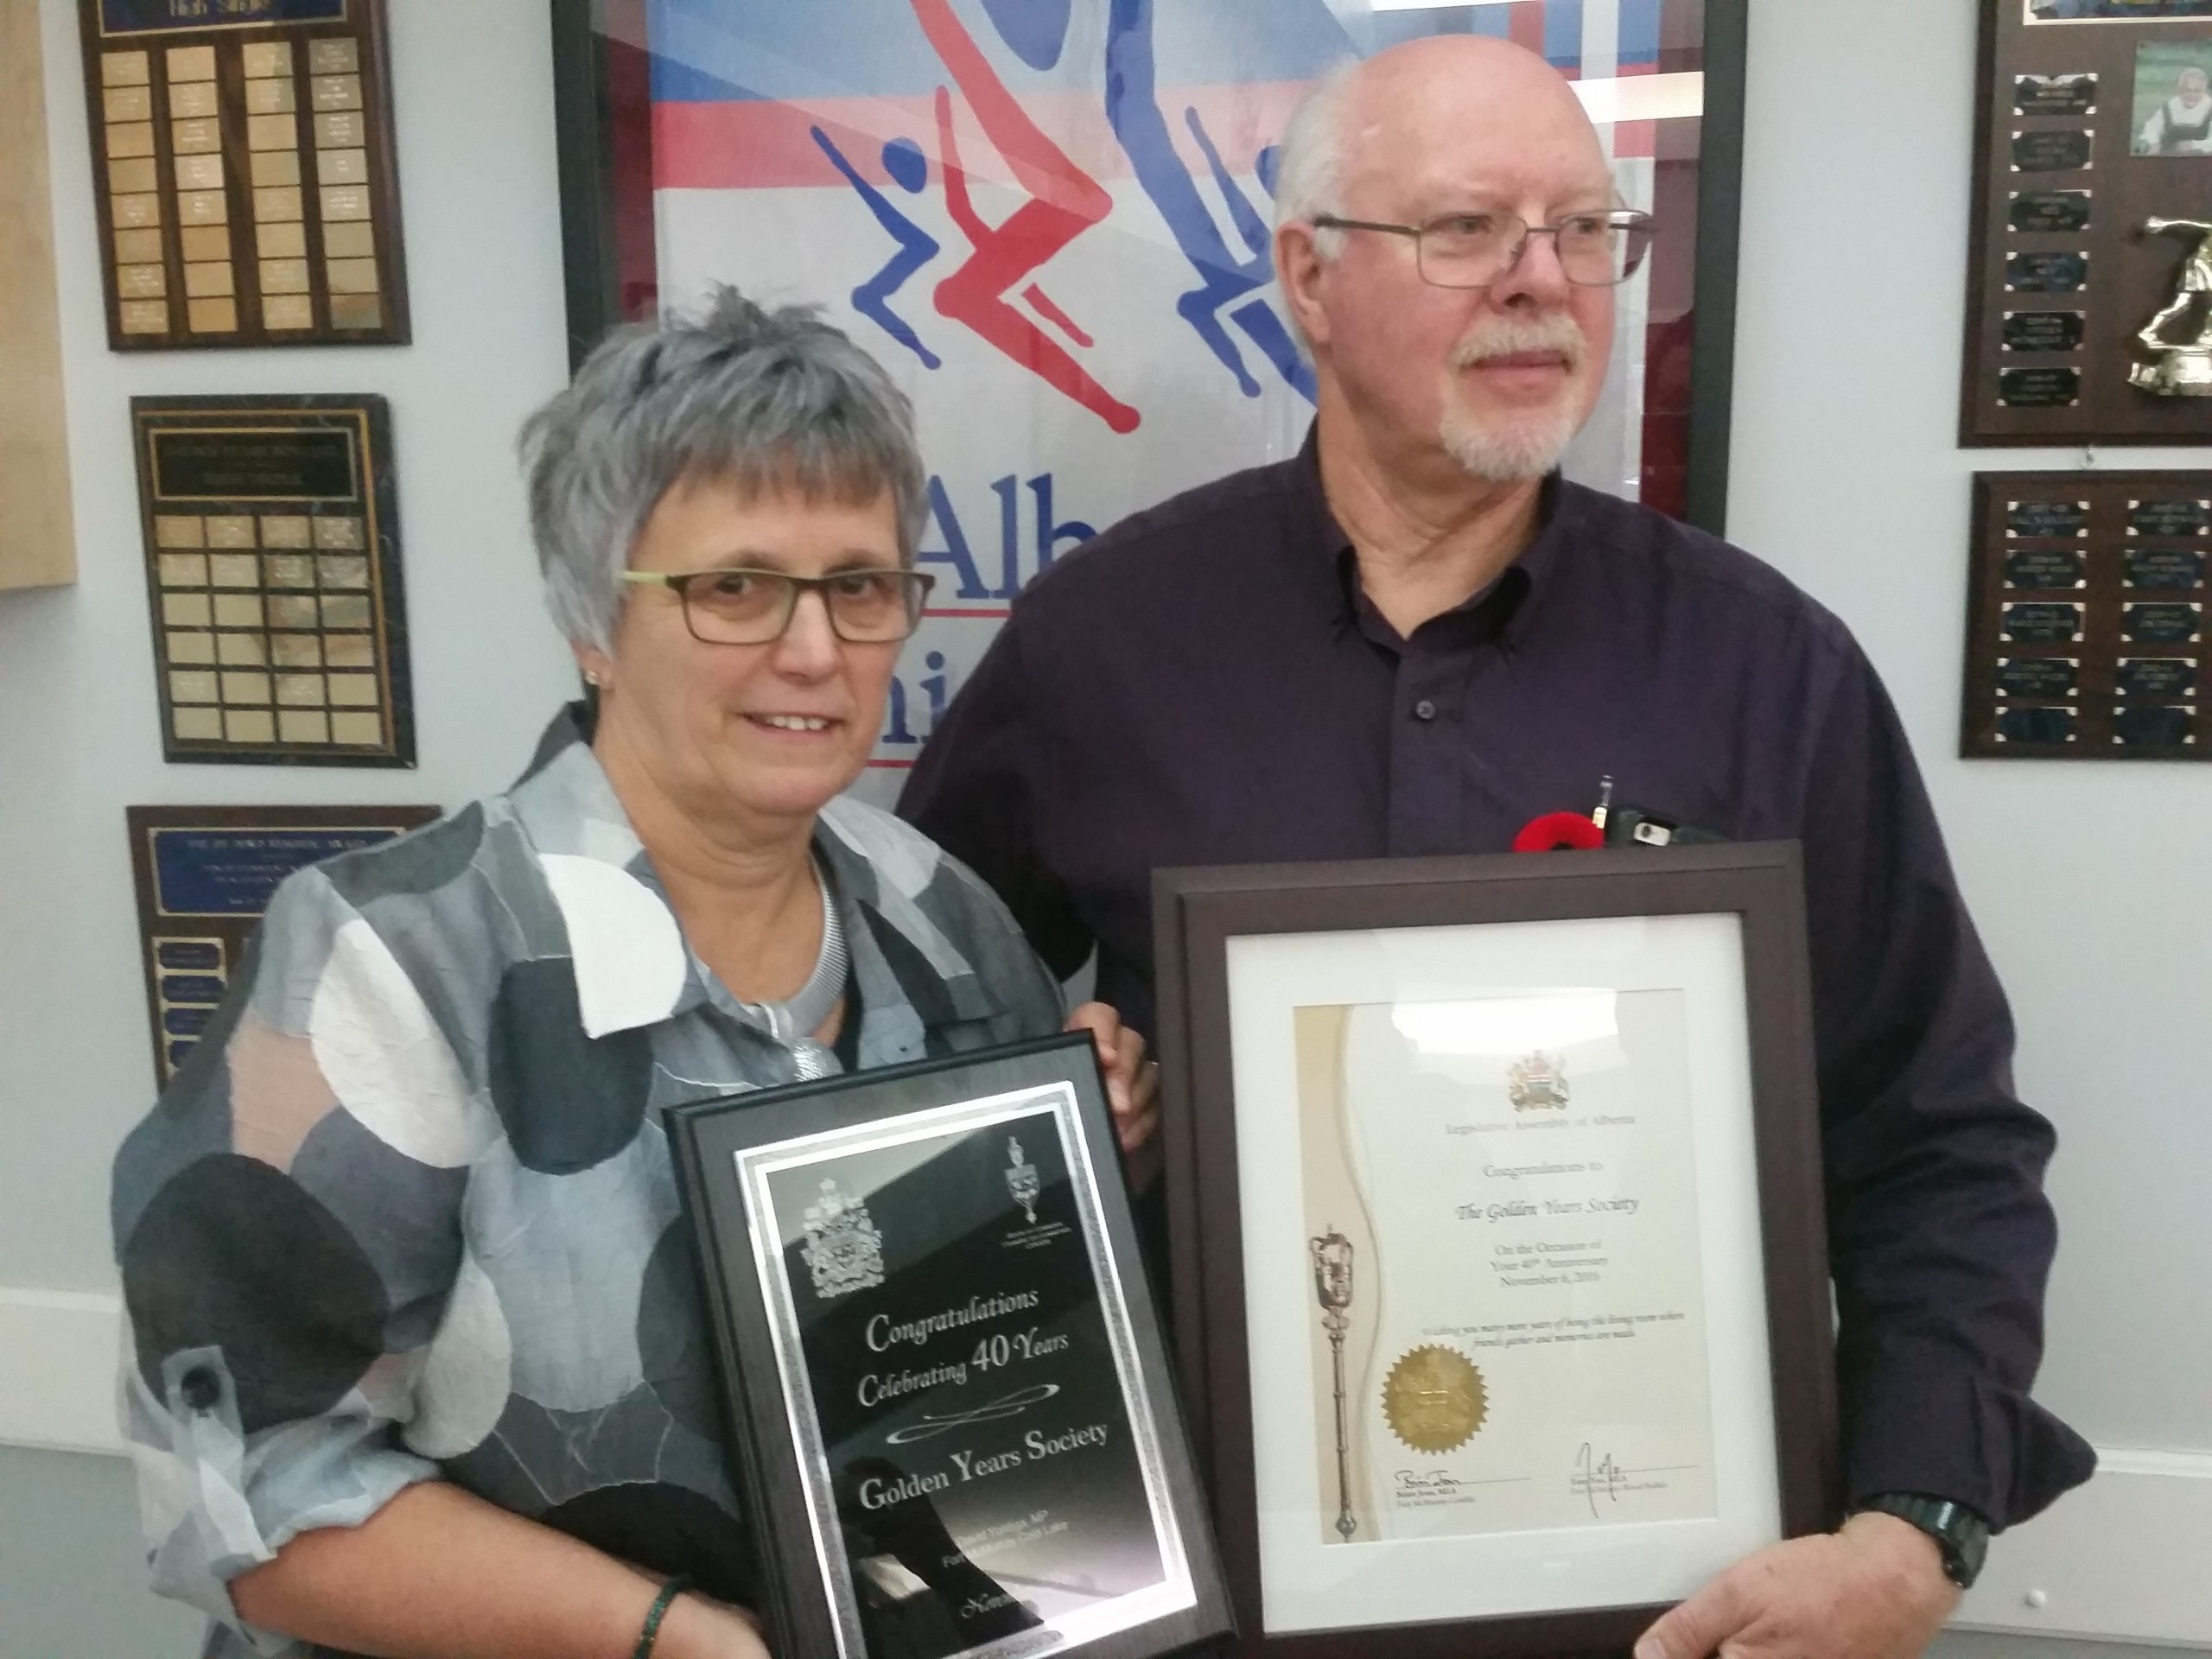 Golden Years Society celebrates 40 years